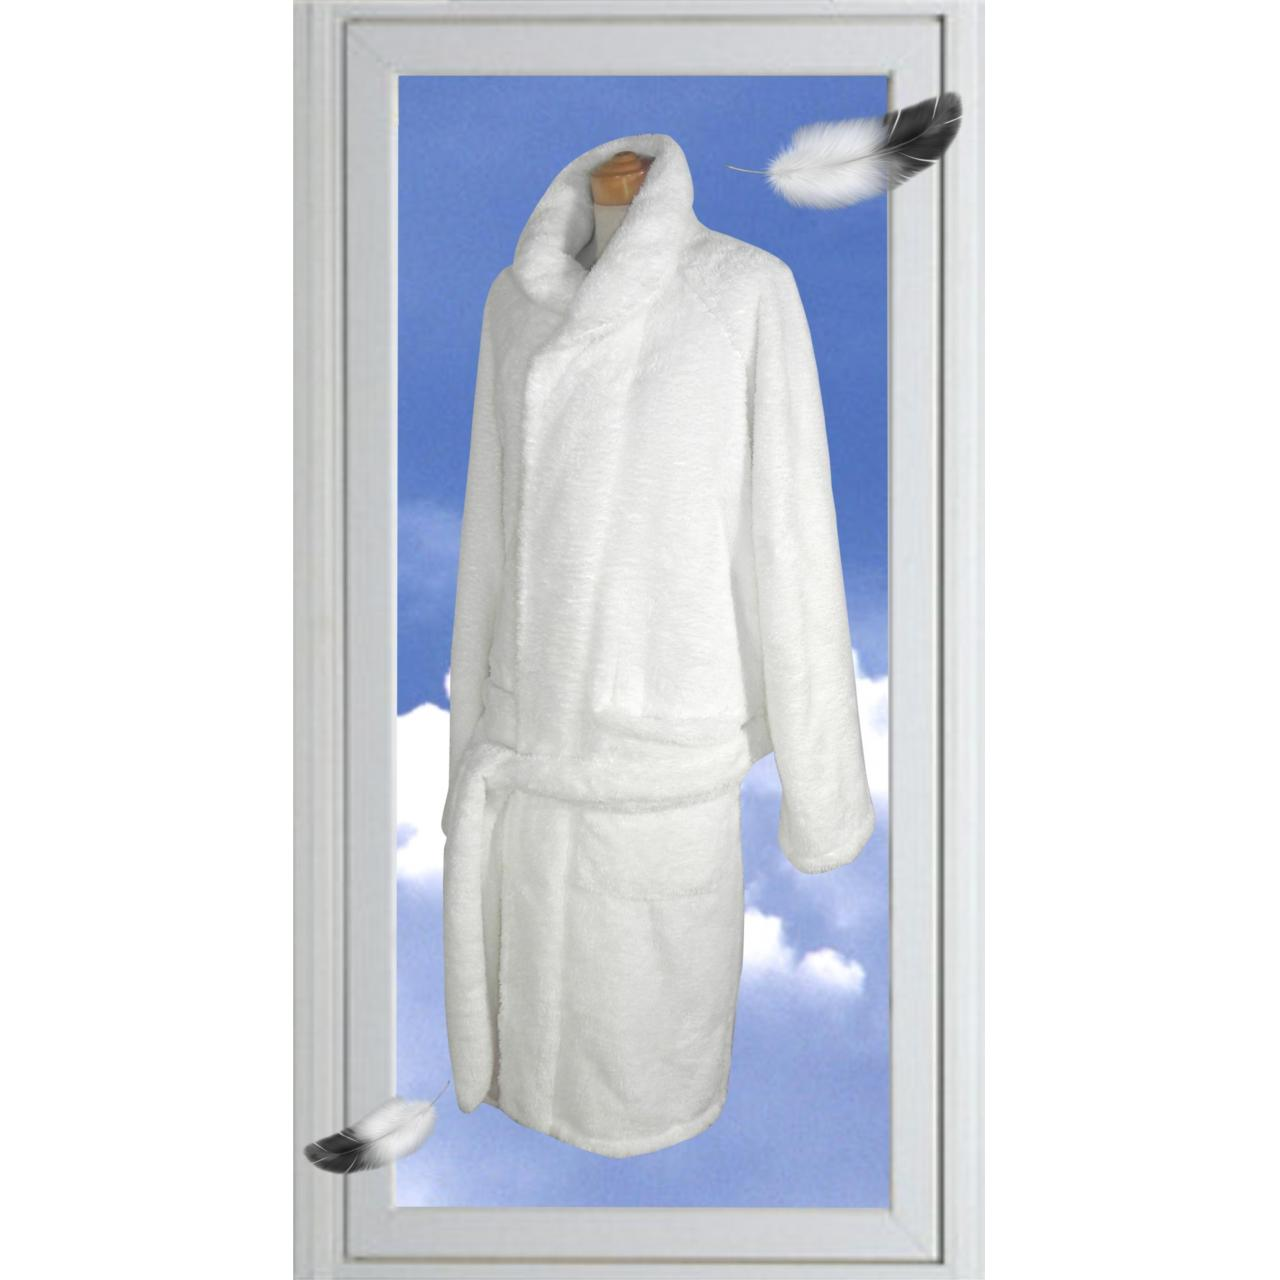 Shirelyro Smooth Bathrobe